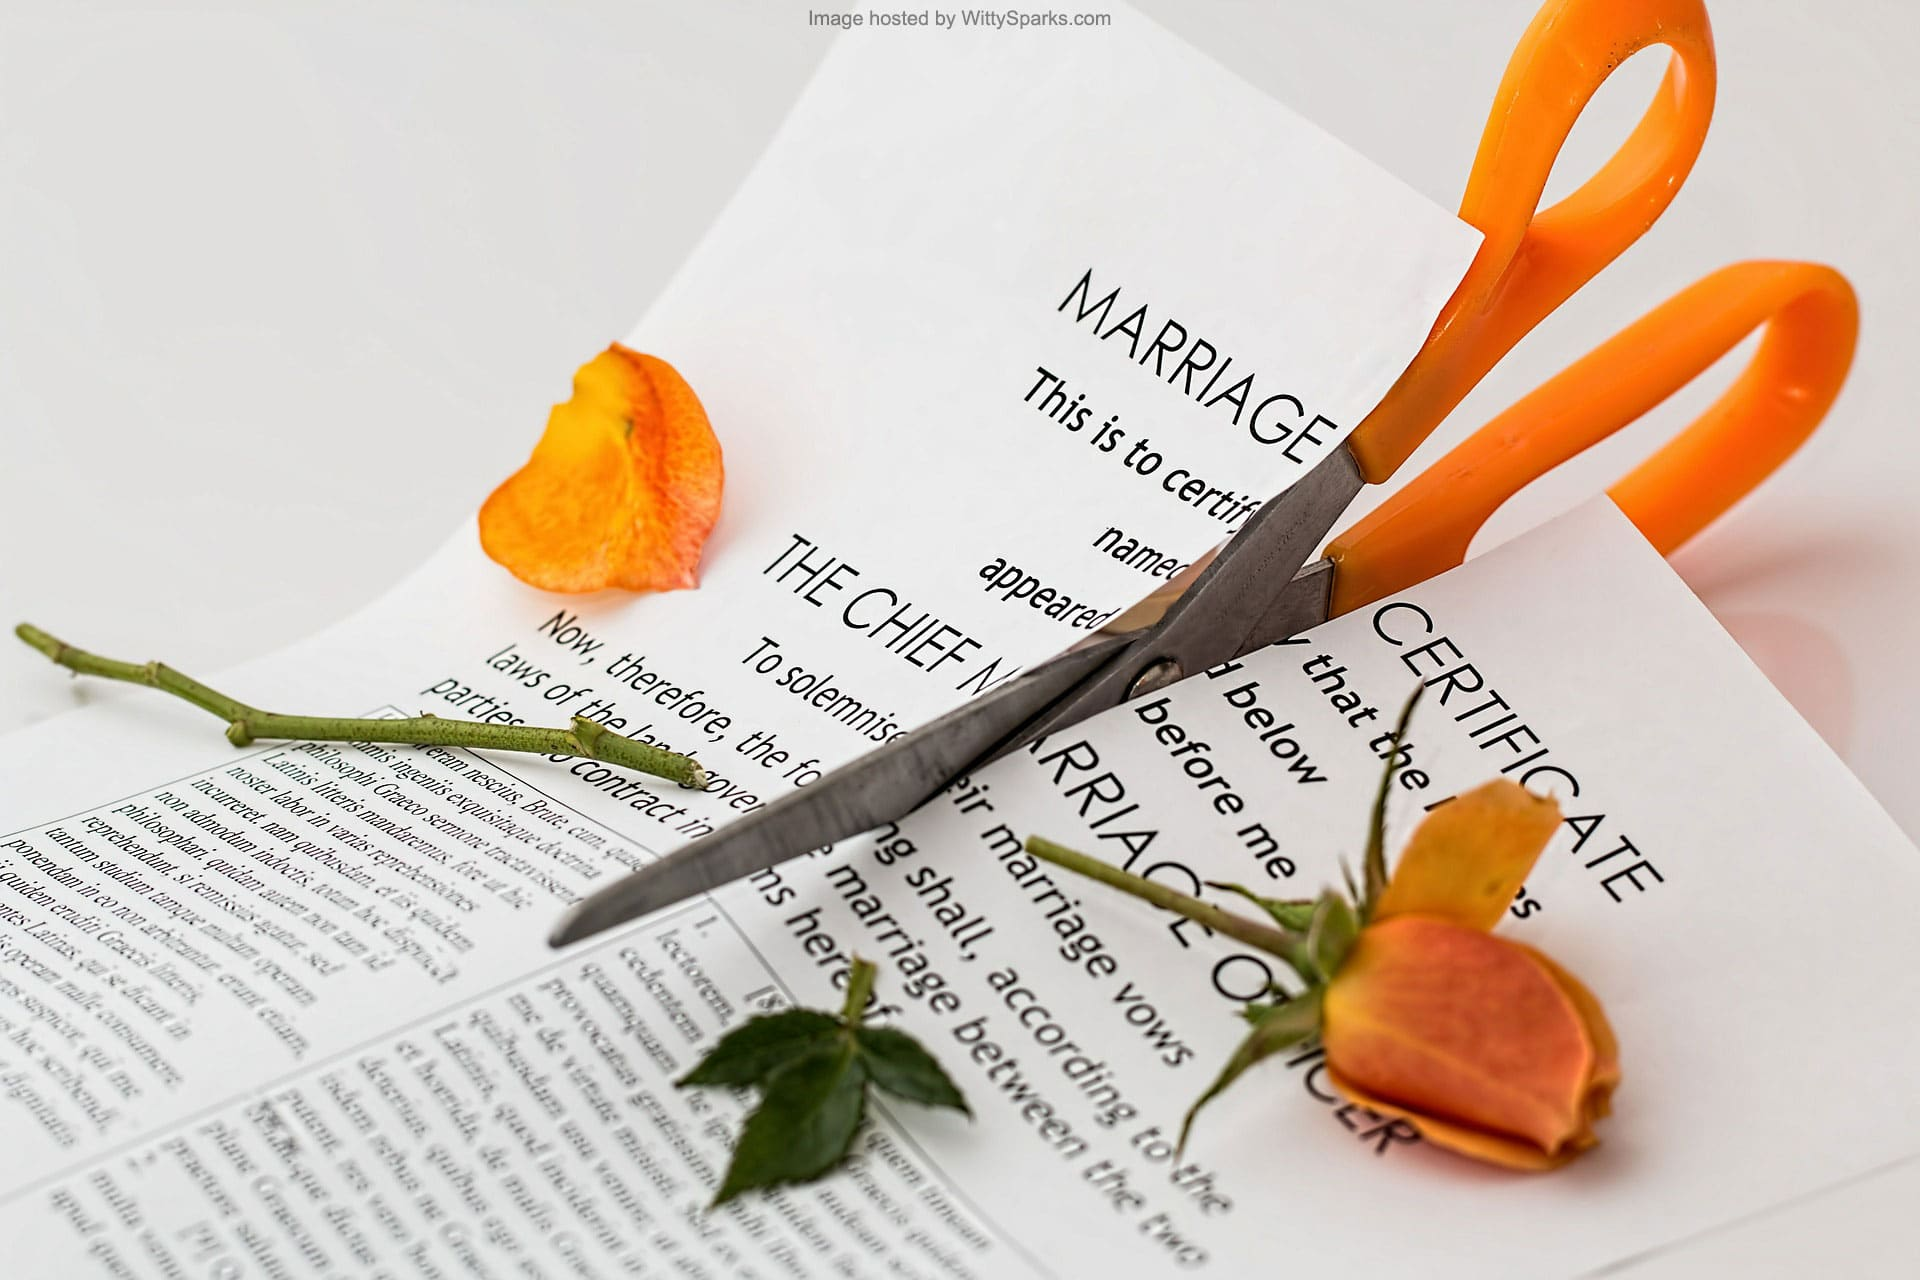 The effects of separation and divorce on a family